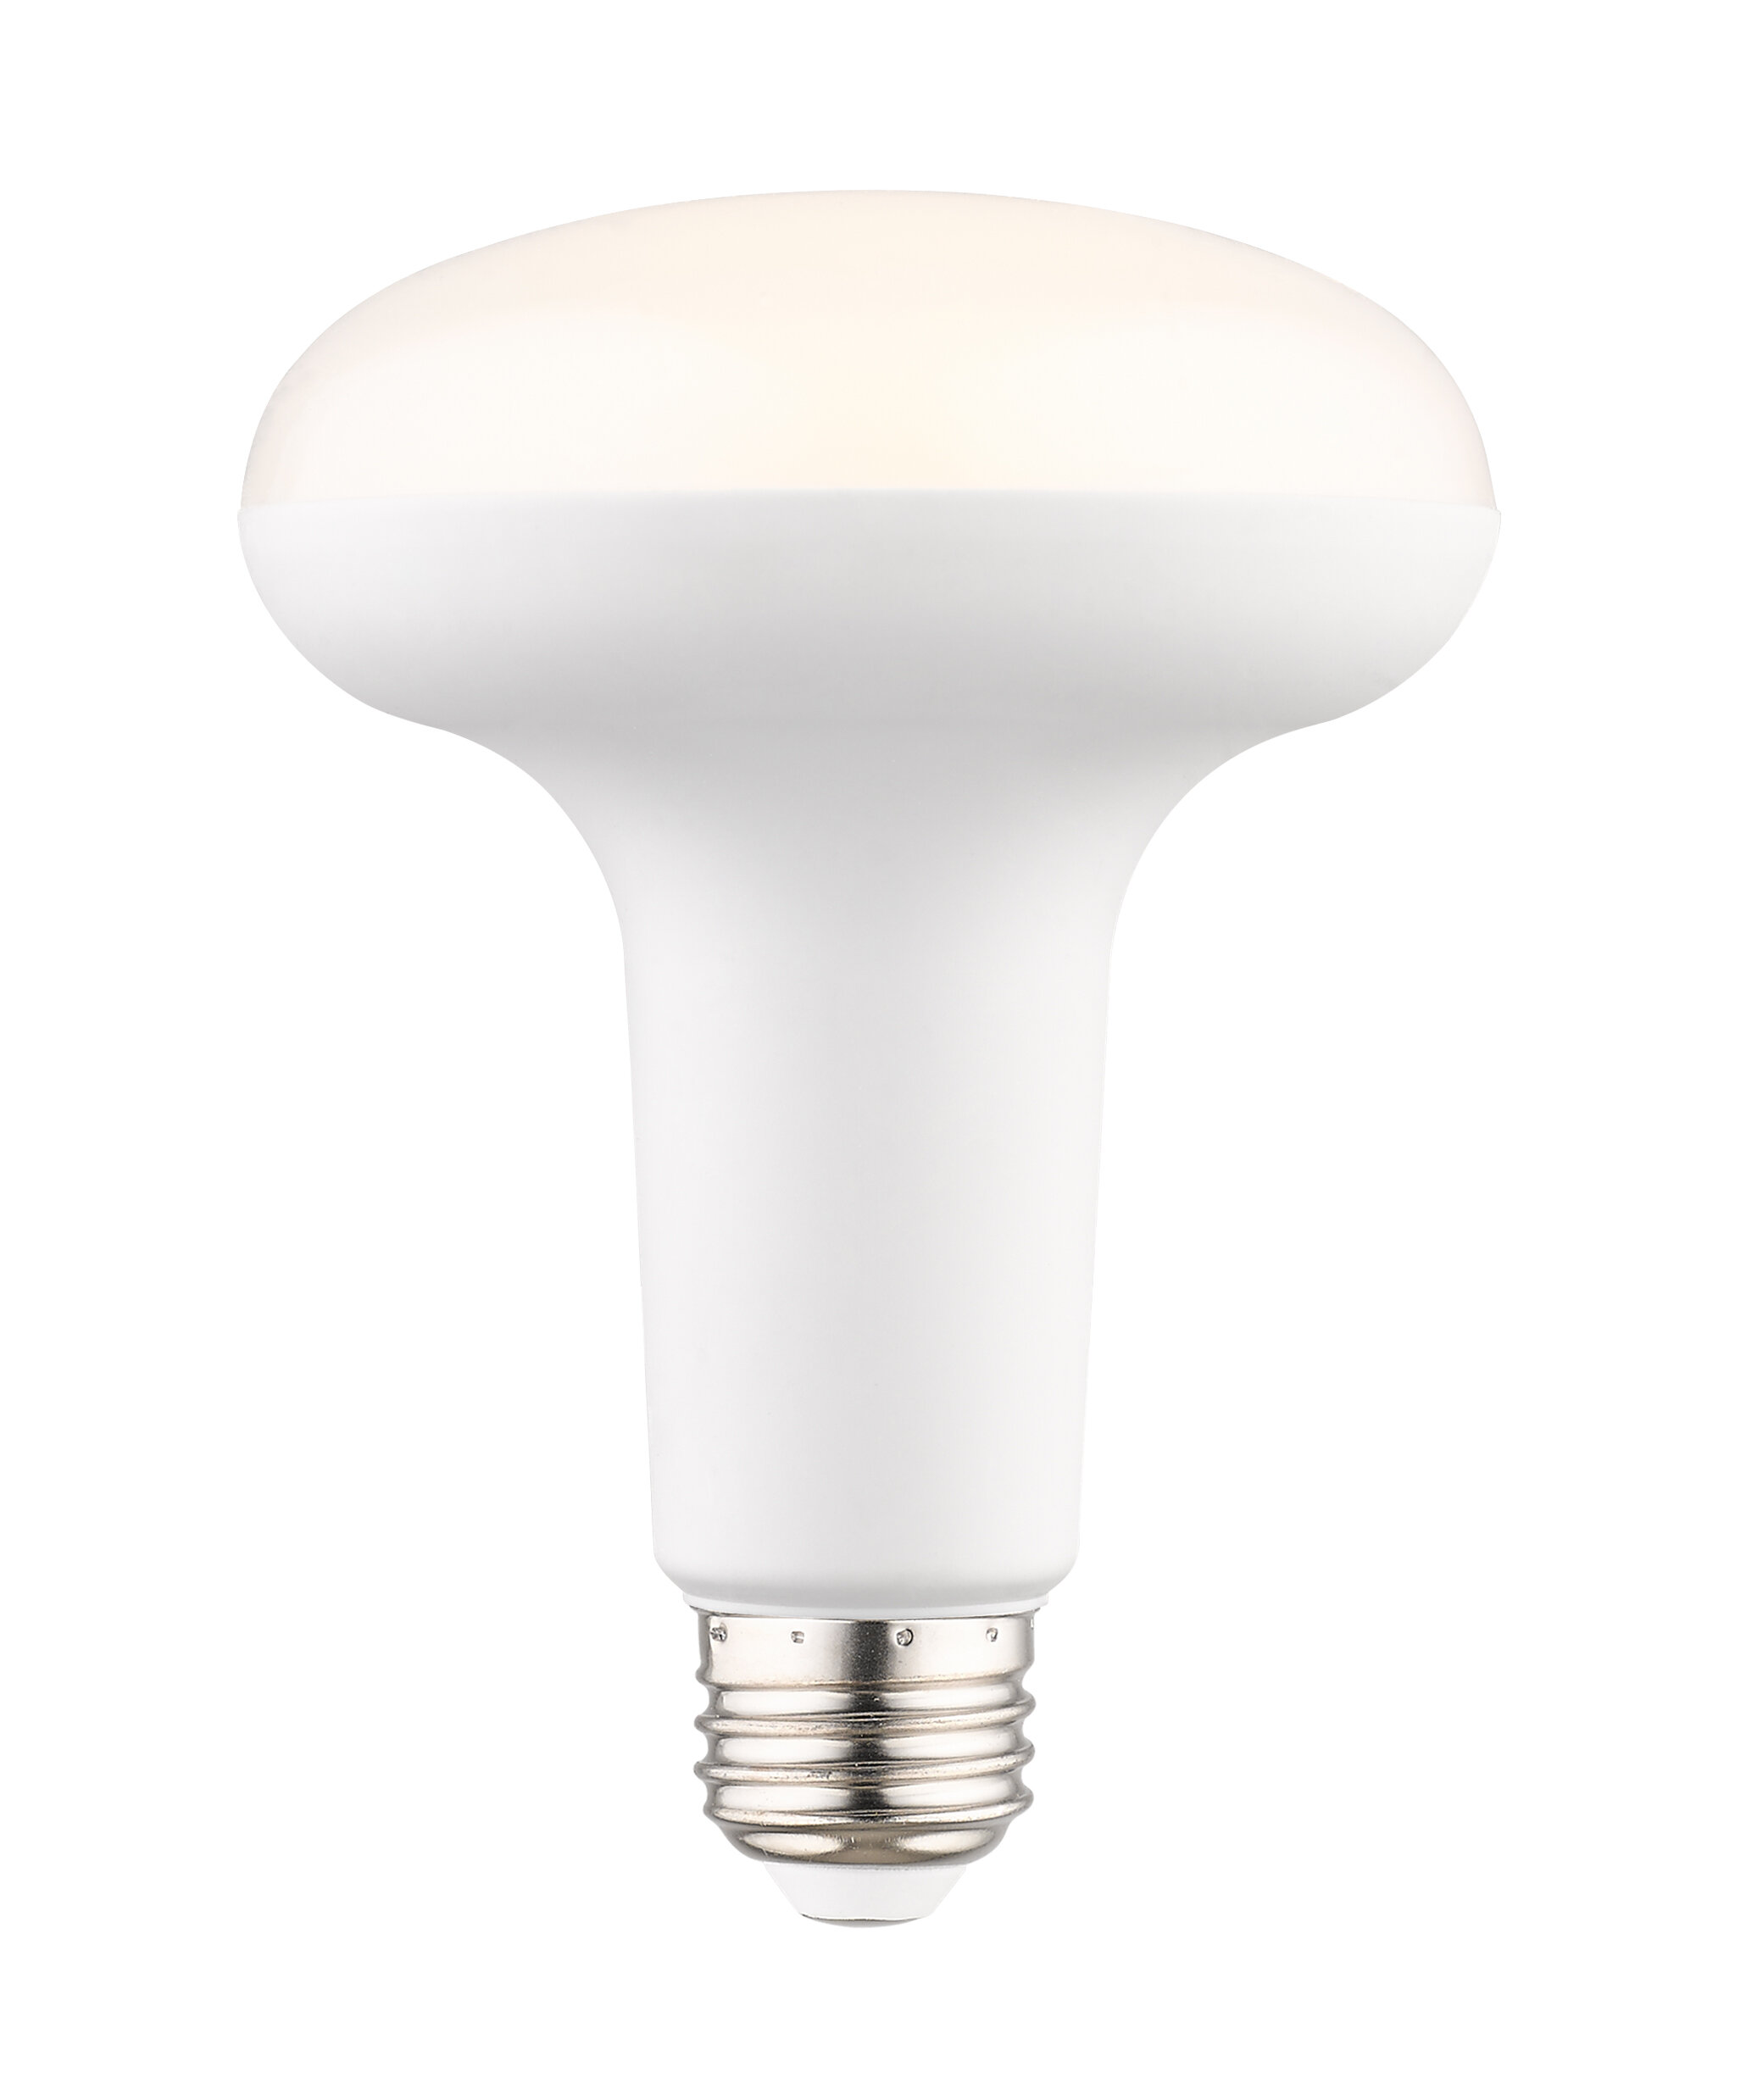 Jtechs Inc 10 Watt 75 Watt Equivalent Br30 Led Dimmable Light Bulb E26 Medium Standard Base Wayfair